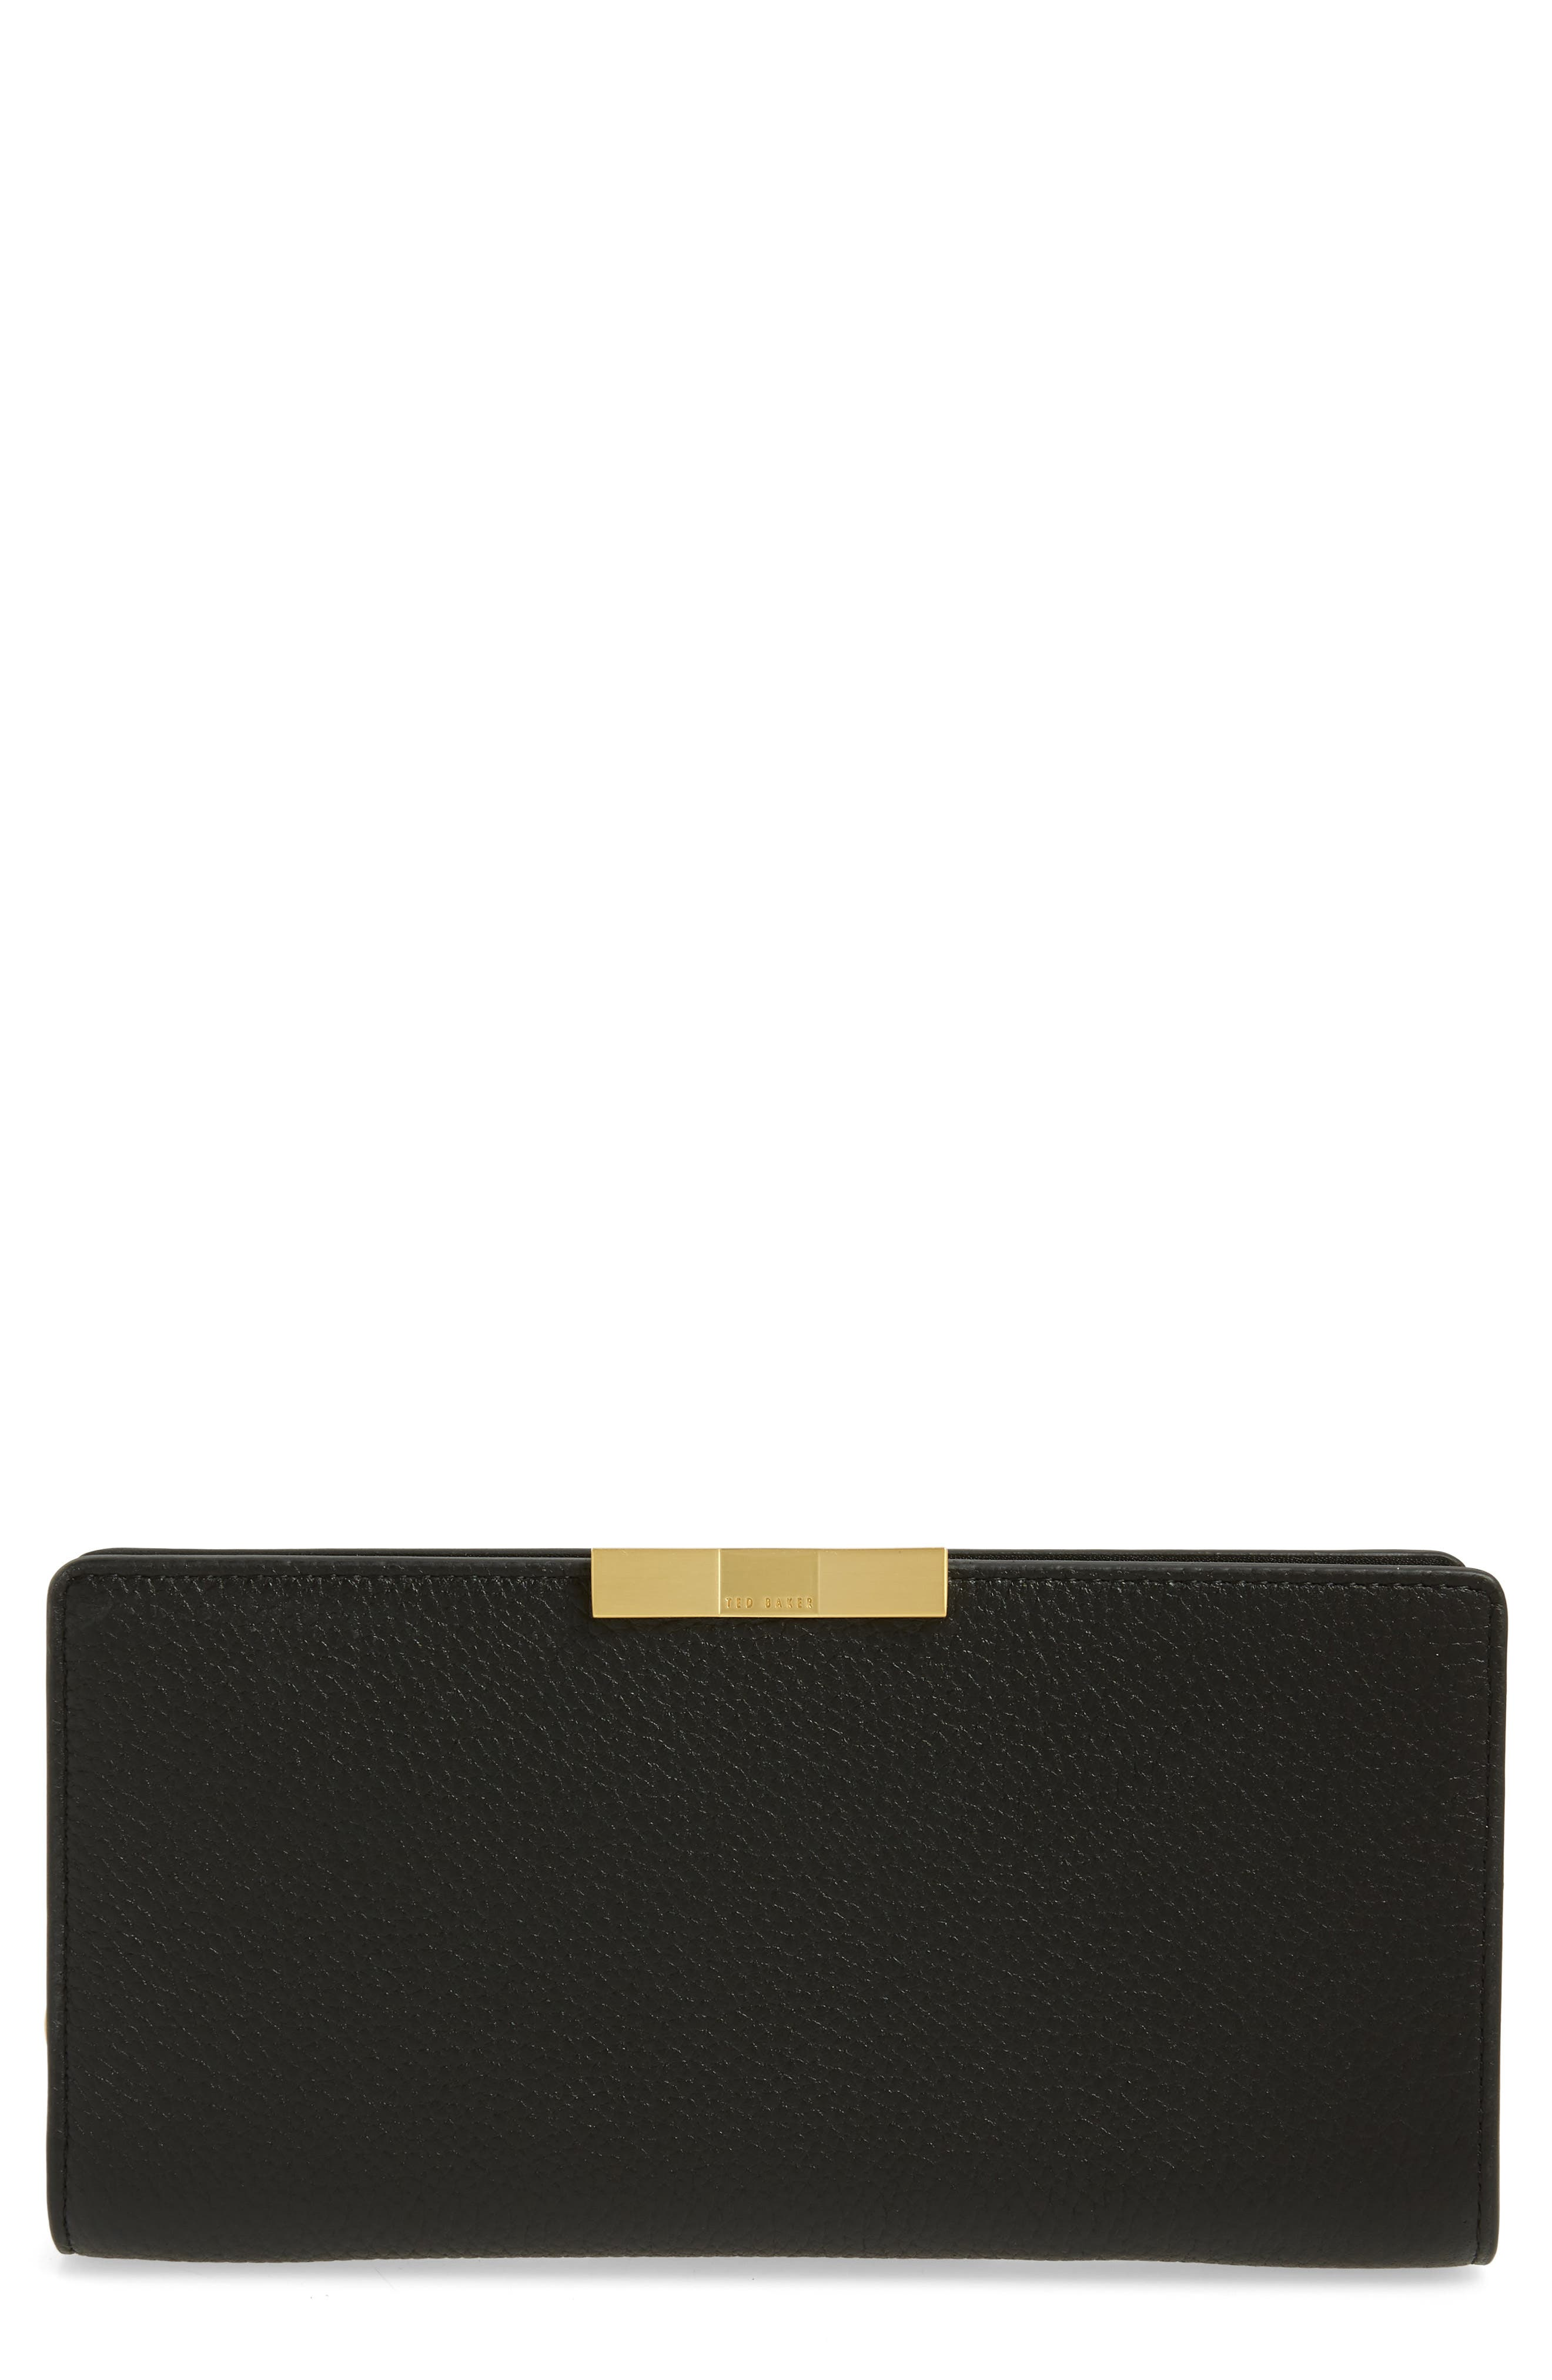 TED BAKER LONDON Emblyn Leather Matinée Wallet, Main, color, 001